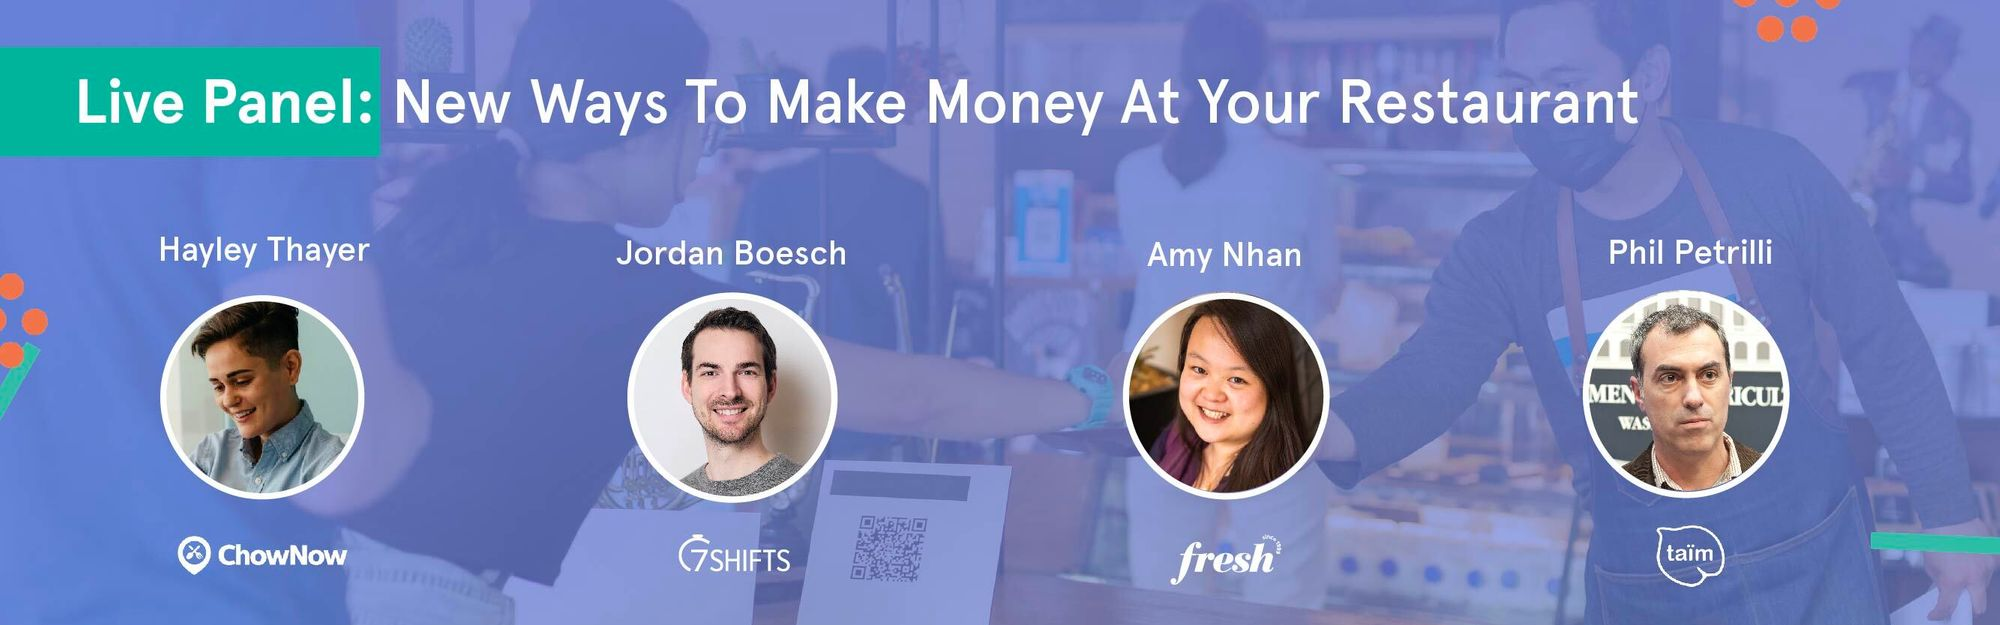 Live Panel: New Ways To Make Money At Your Restaurant